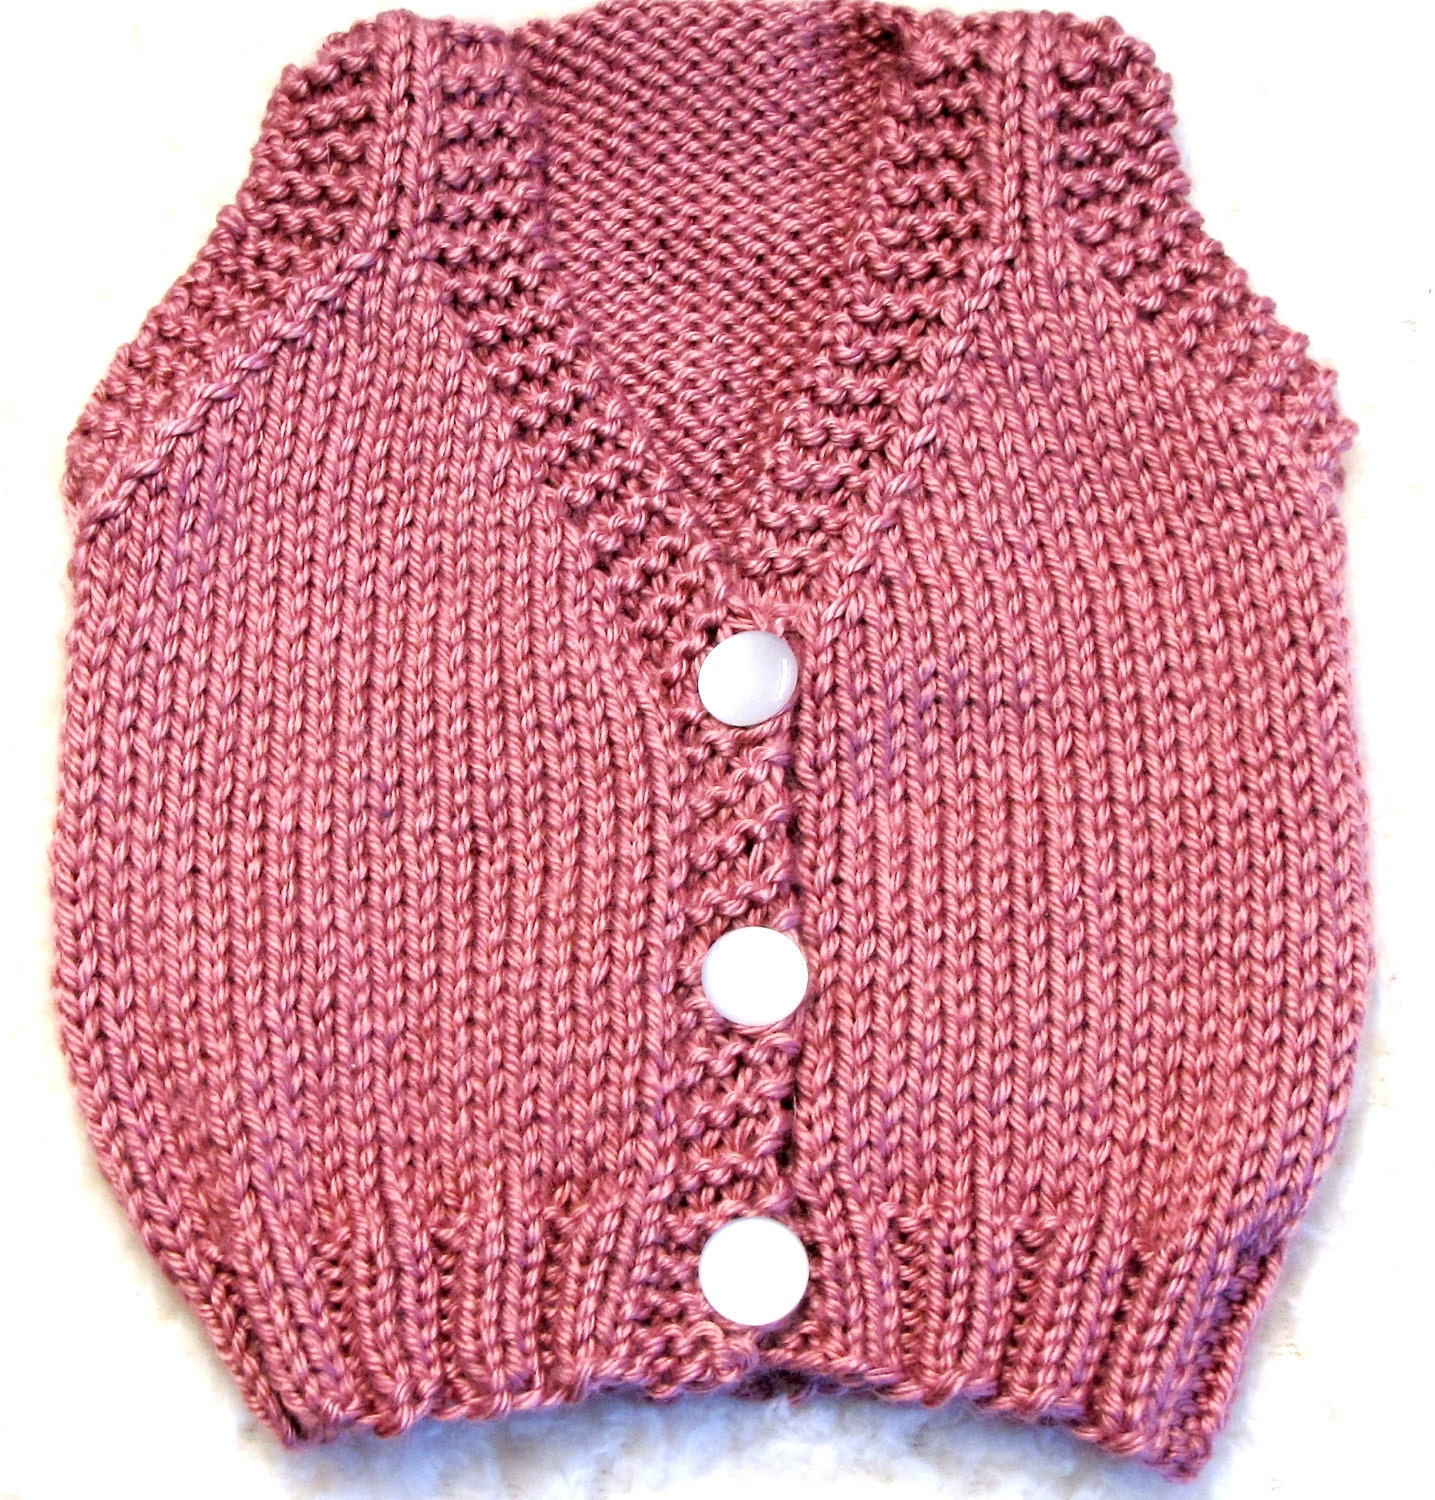 Knitting Pattern For Ruffle Baby Vest : Baby Vest Knitting Pattern SMALL PDF